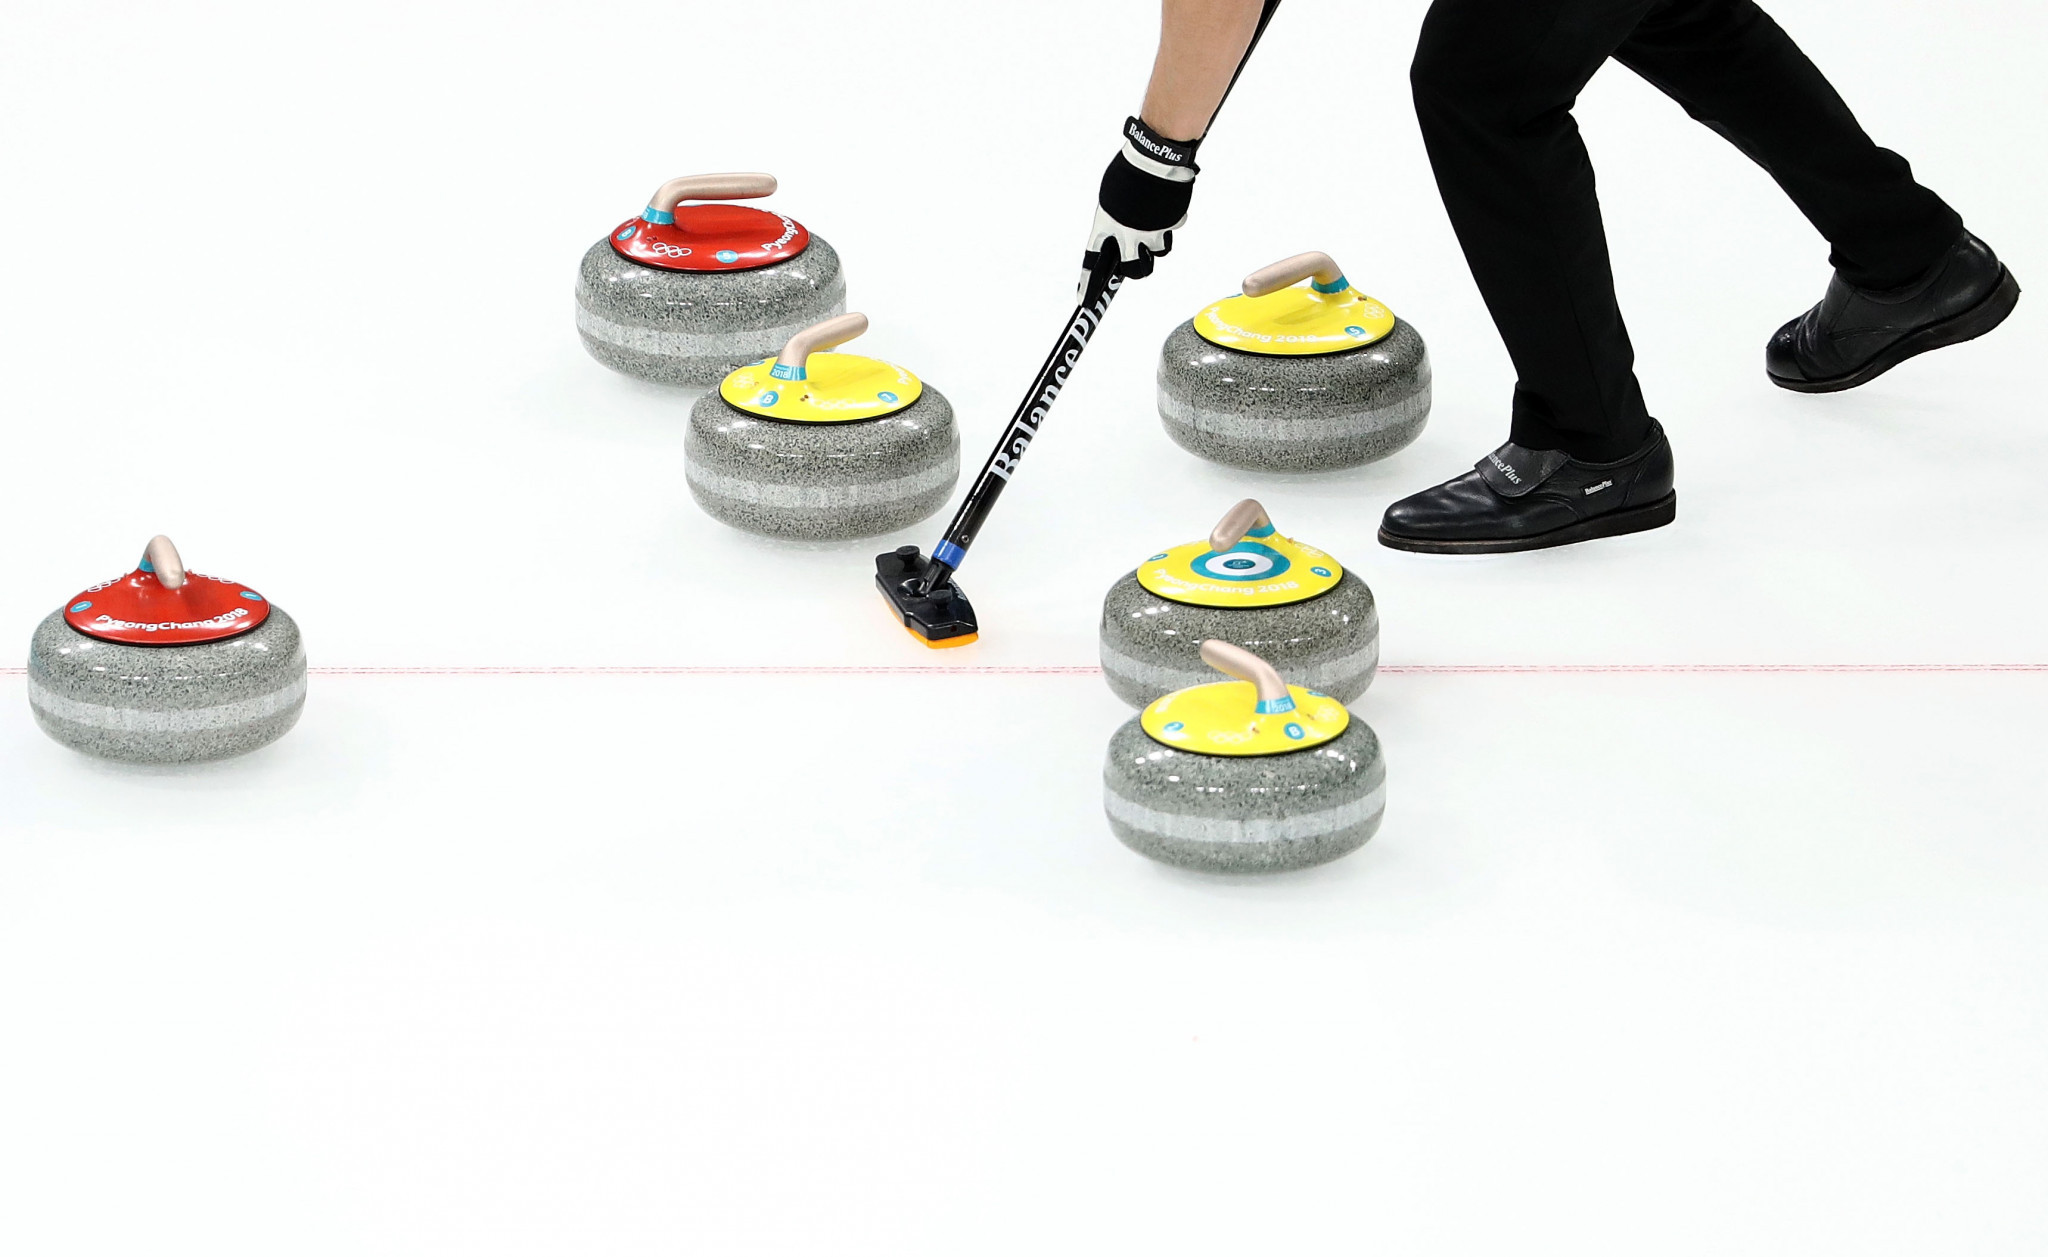 Scotland to host qualifier for World Mixed Doubles Curling Championship in January